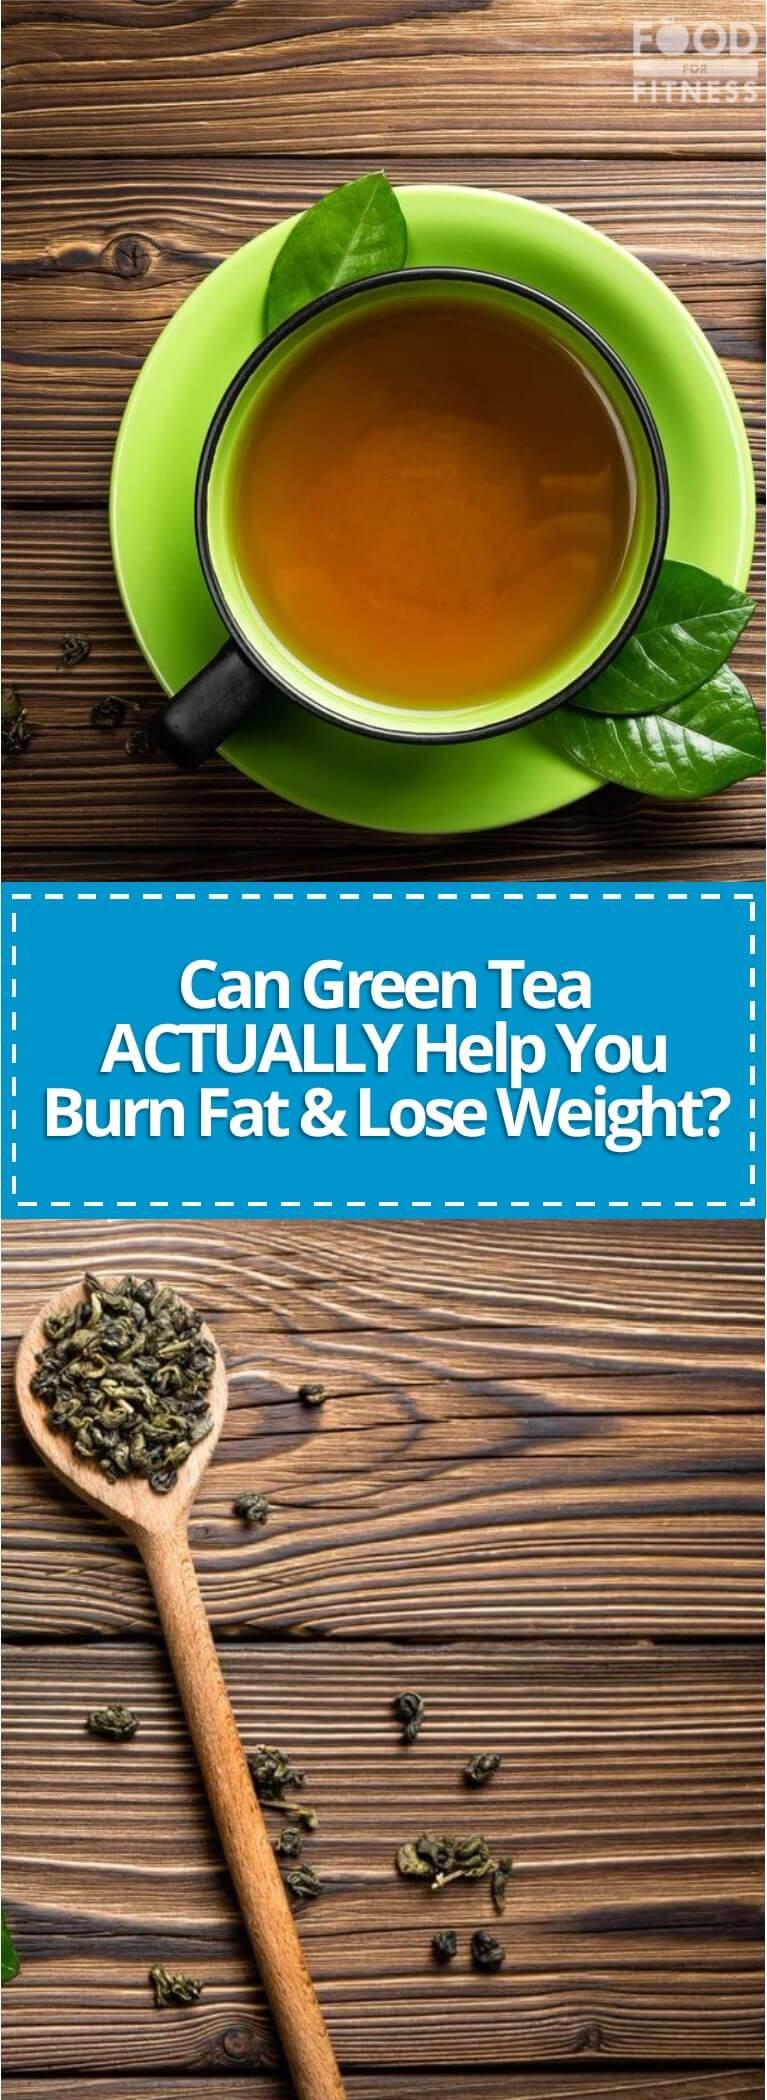 Can Green Tea ACTUALLY Help You Burn Fat & Lose Weight?